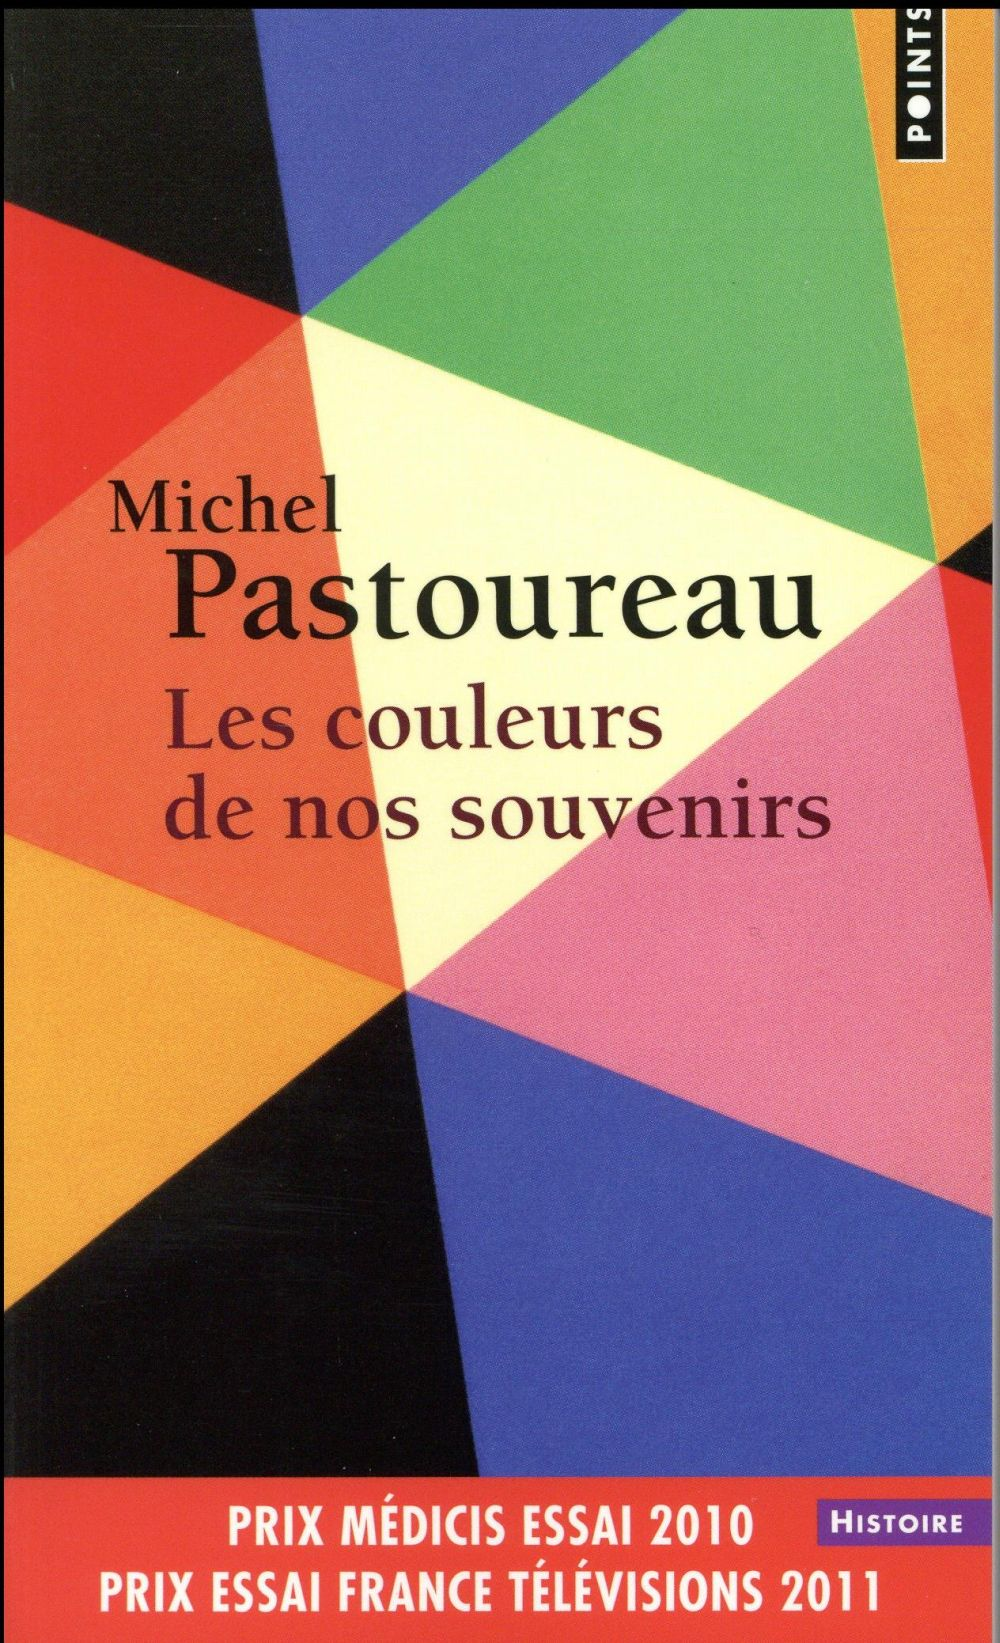 https://webservice-livre.tmic-ellipses.com/couverture/9782757854471.jpg Pastoureau Michel Points